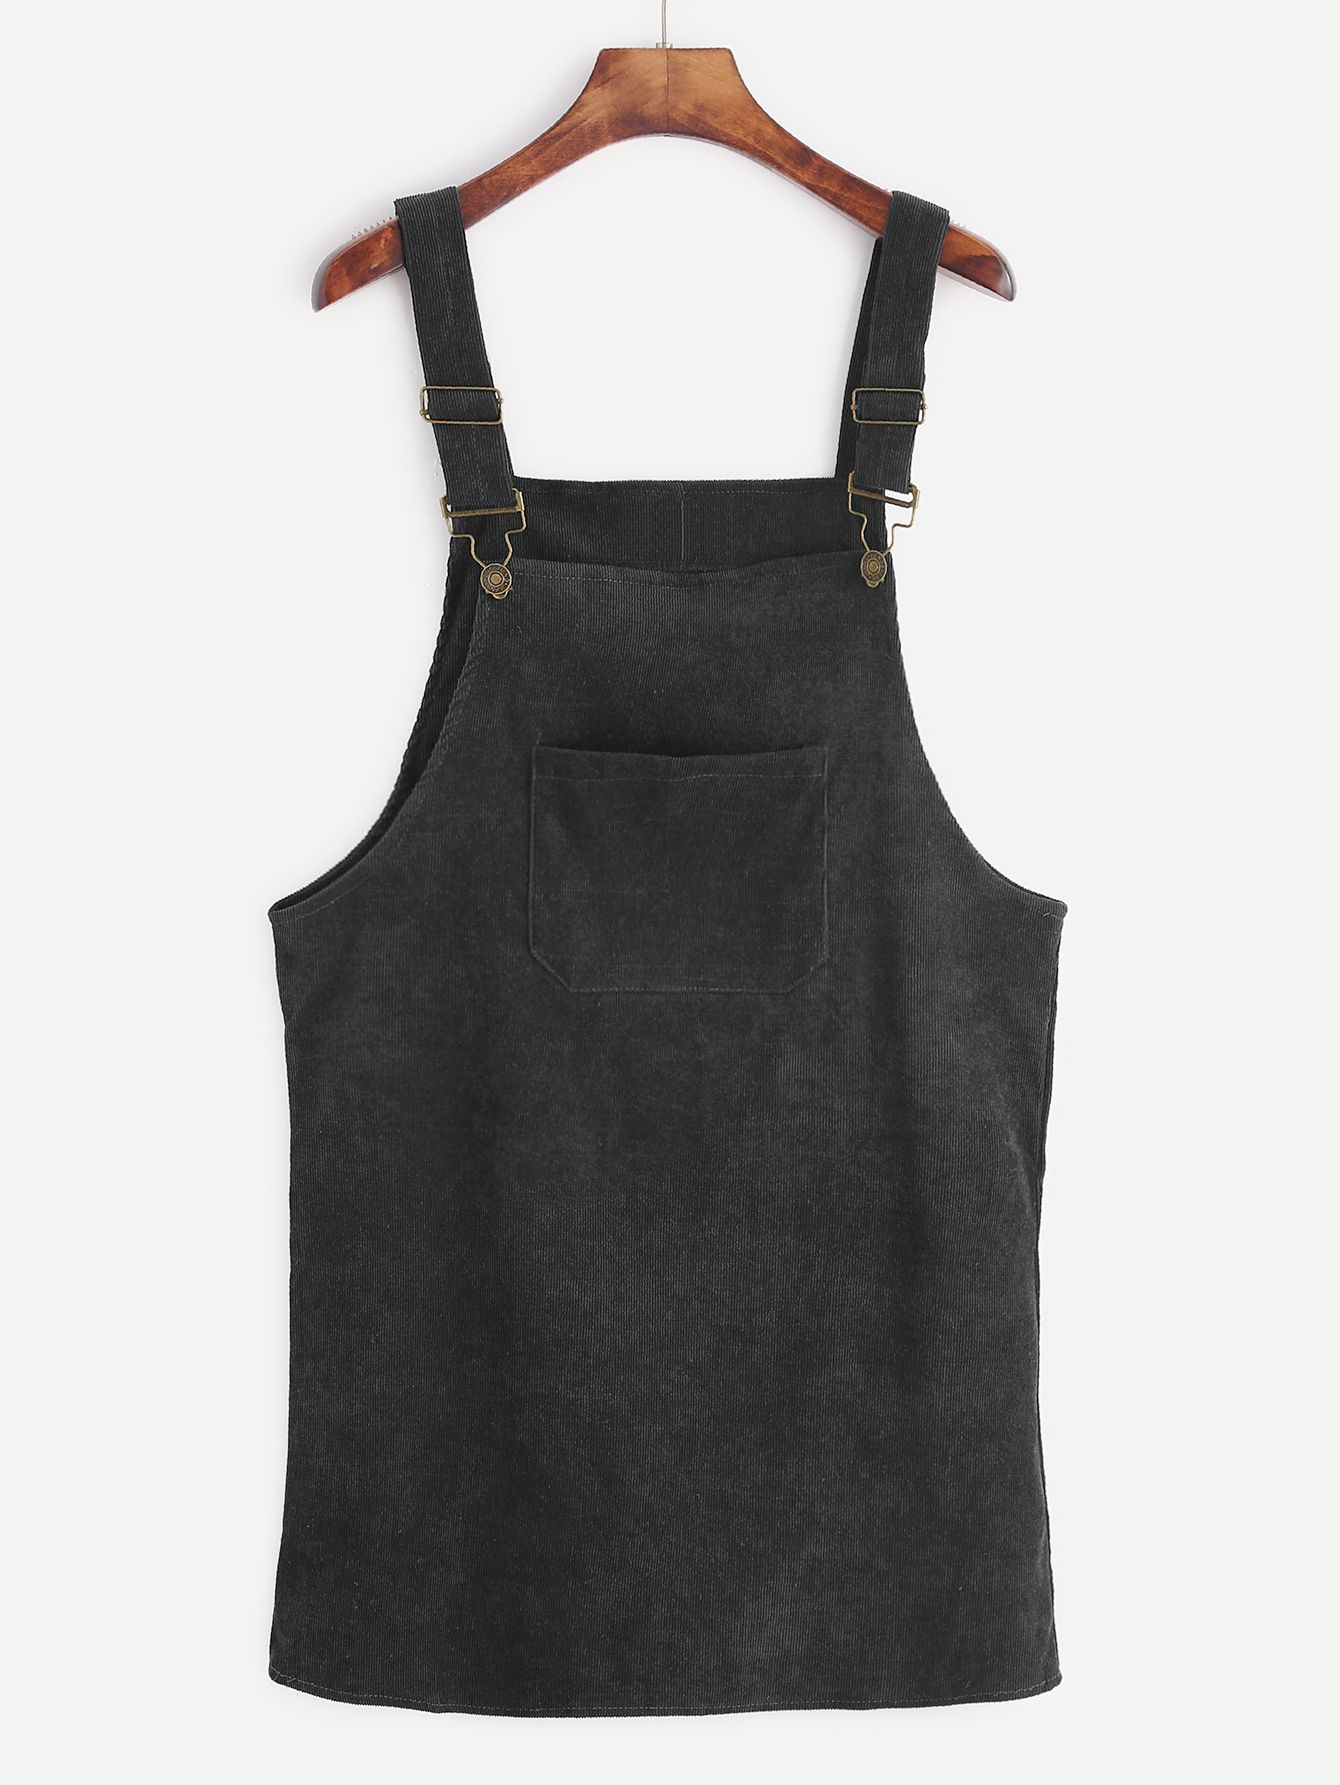 e4f8592445 Shop Black Corduroy Overall Dress With Pocket online. SheIn offers Black  Corduroy Overall Dress With Pocket   more to fit your fashionable needs.